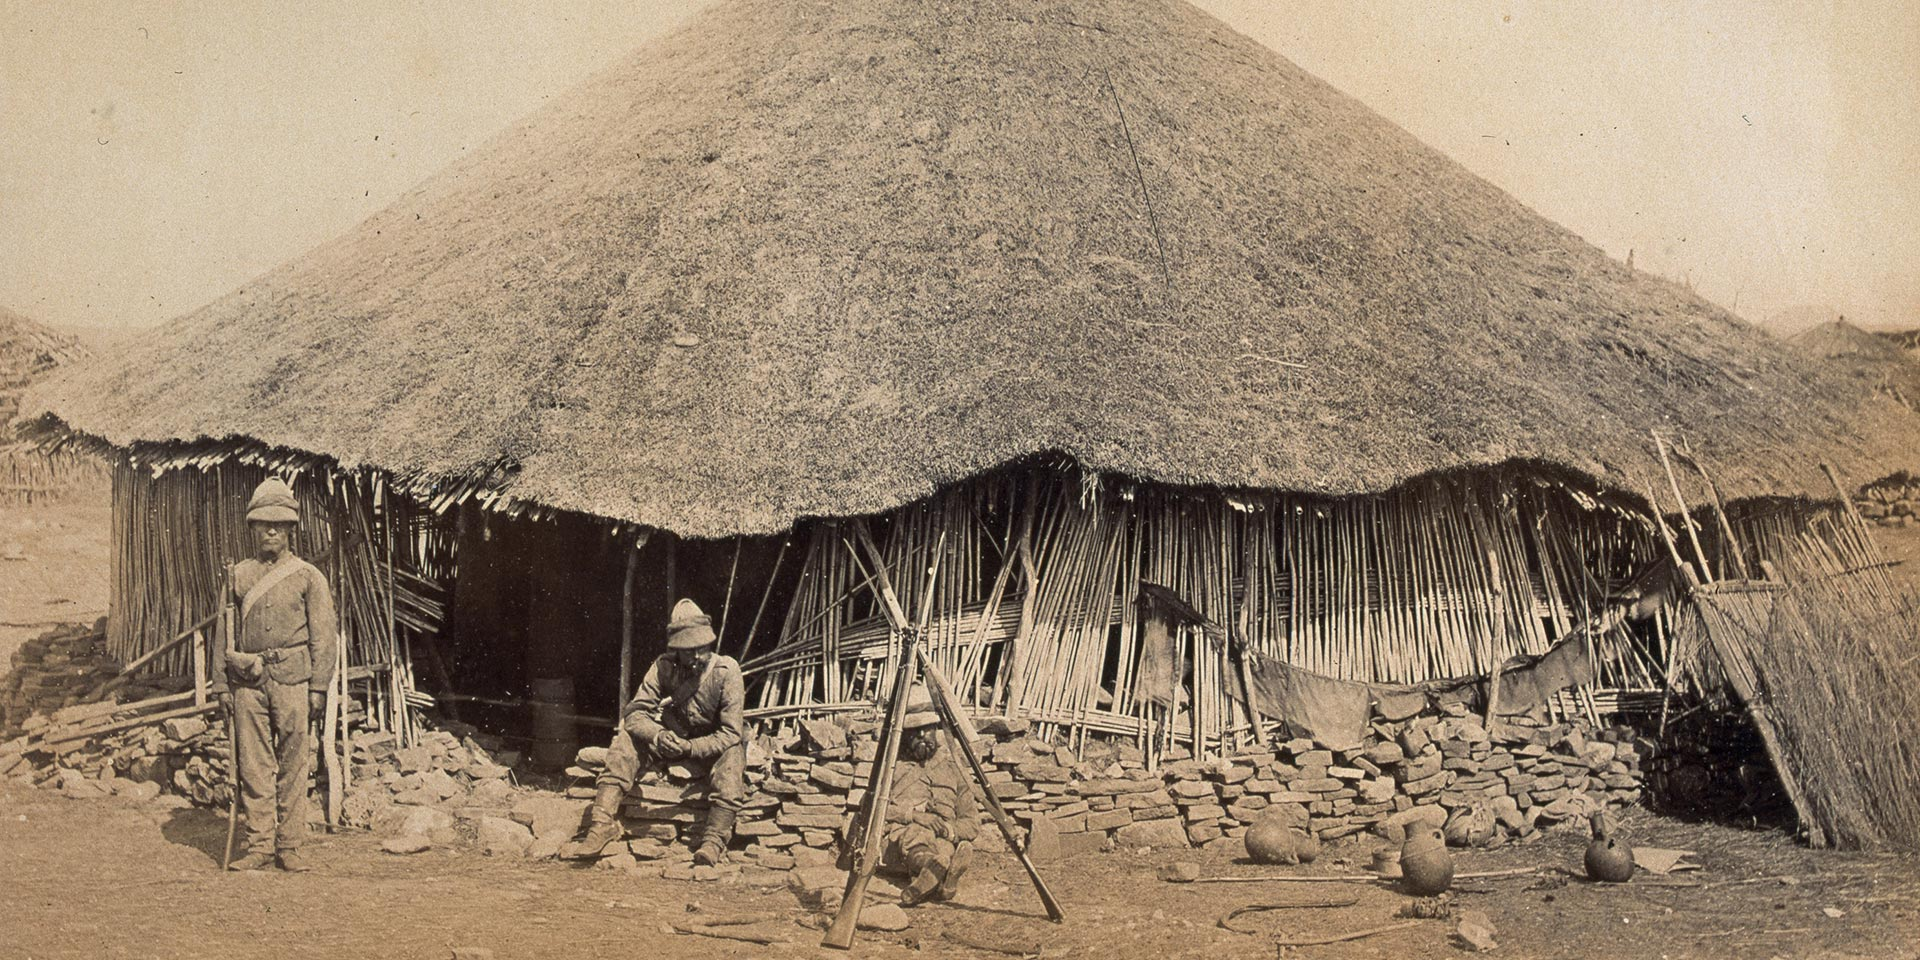 The Abyssinian War, 1867-68: Campaigning in 'a country of which we know so little'